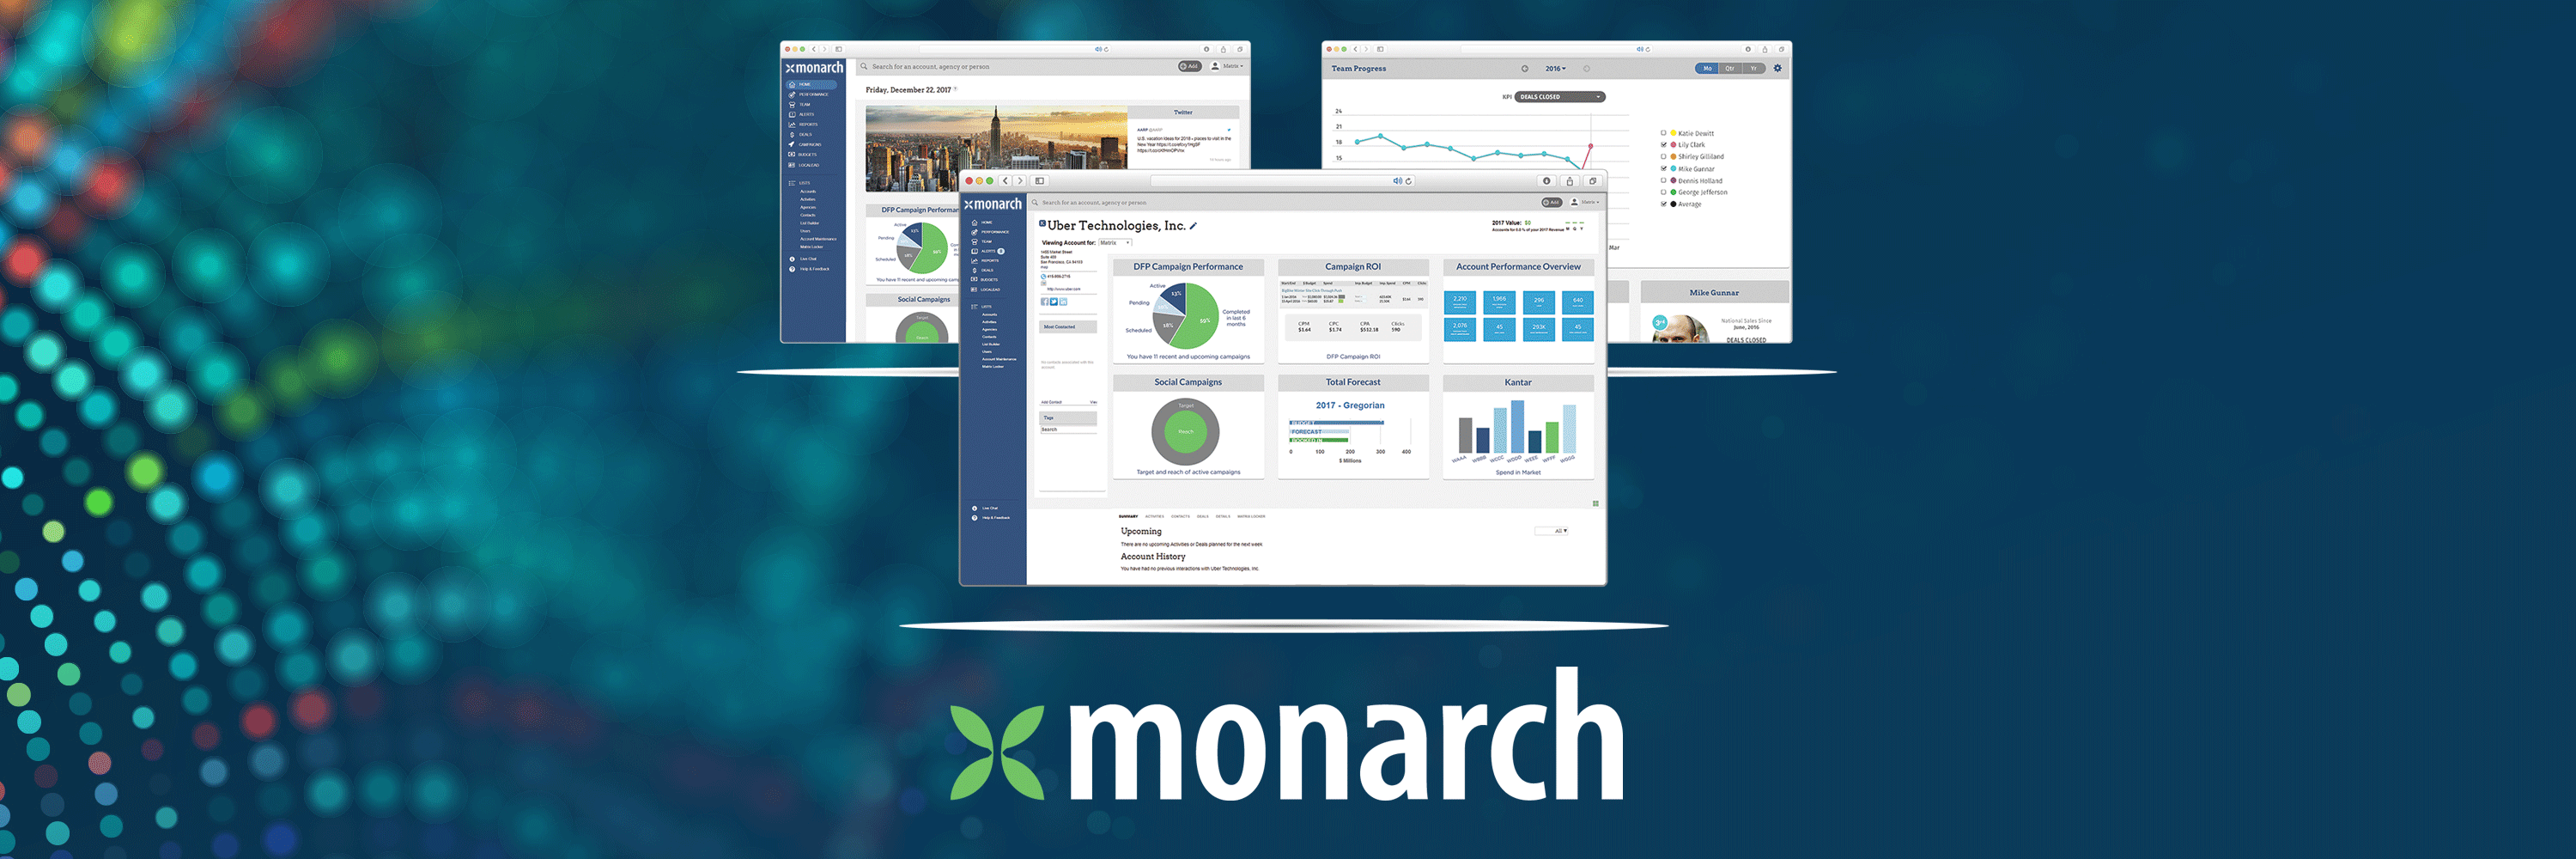 Monarch-Demo-Header